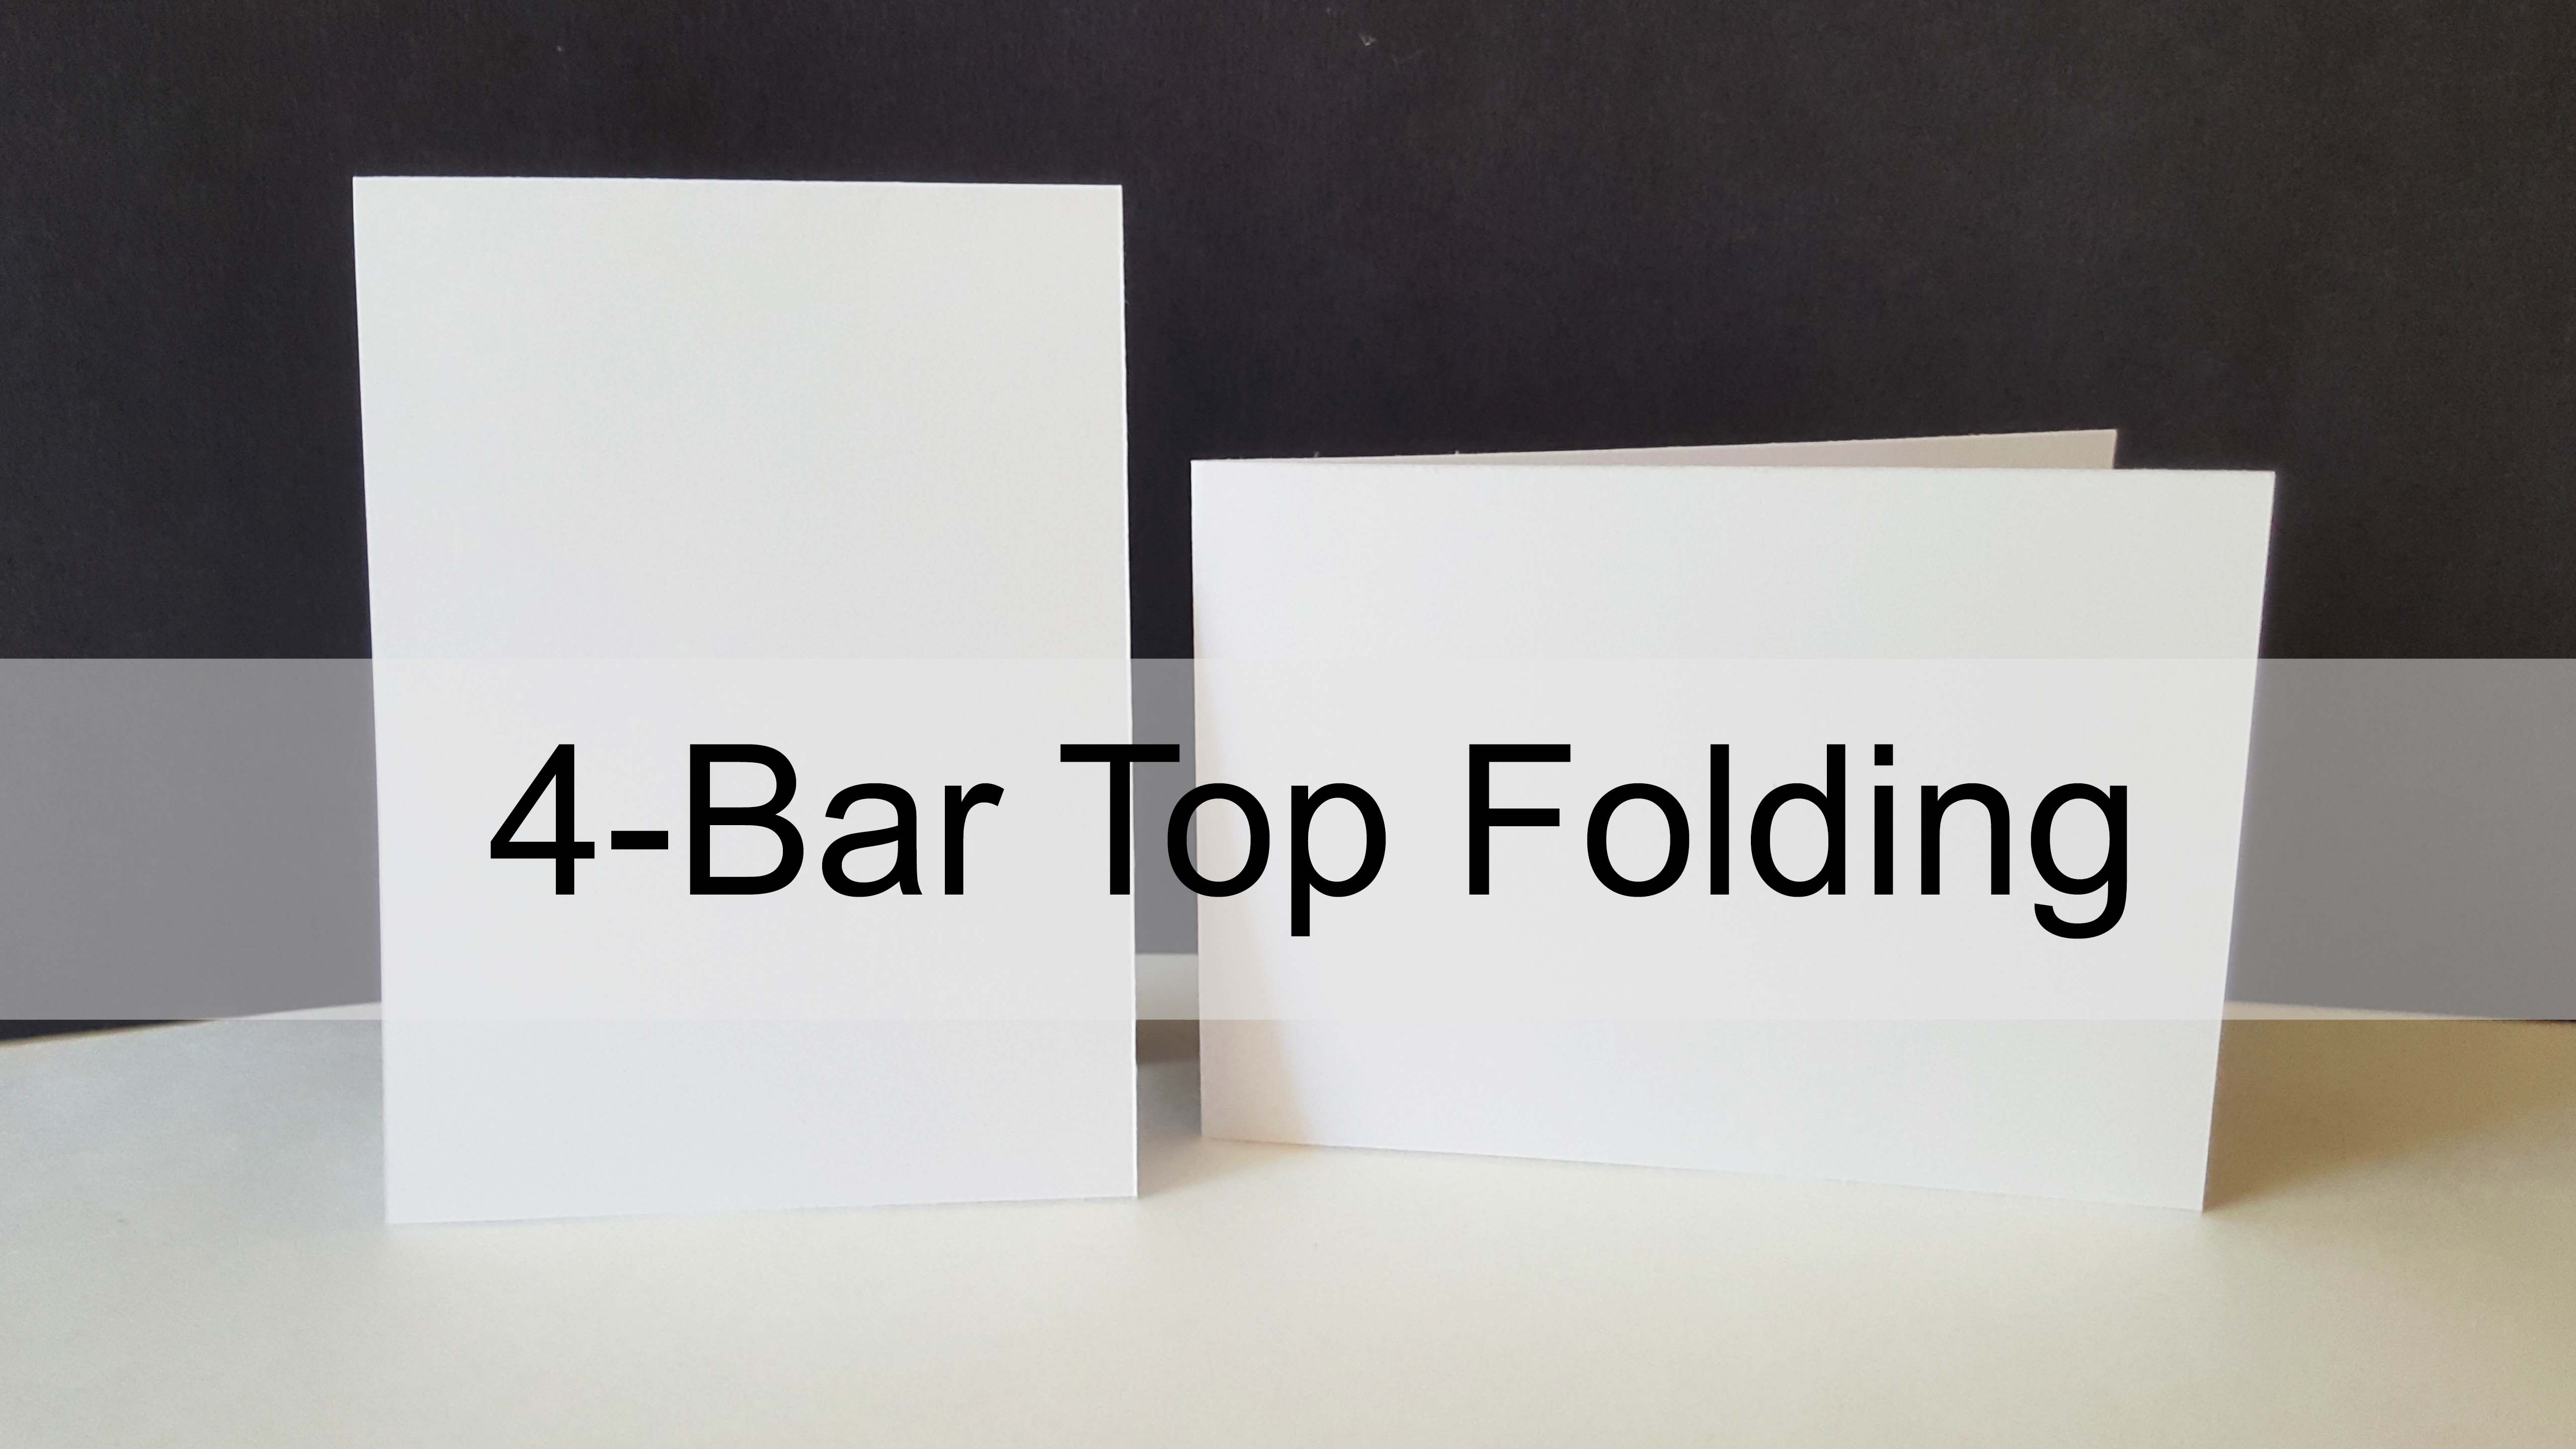 4-bar-top-folding-title